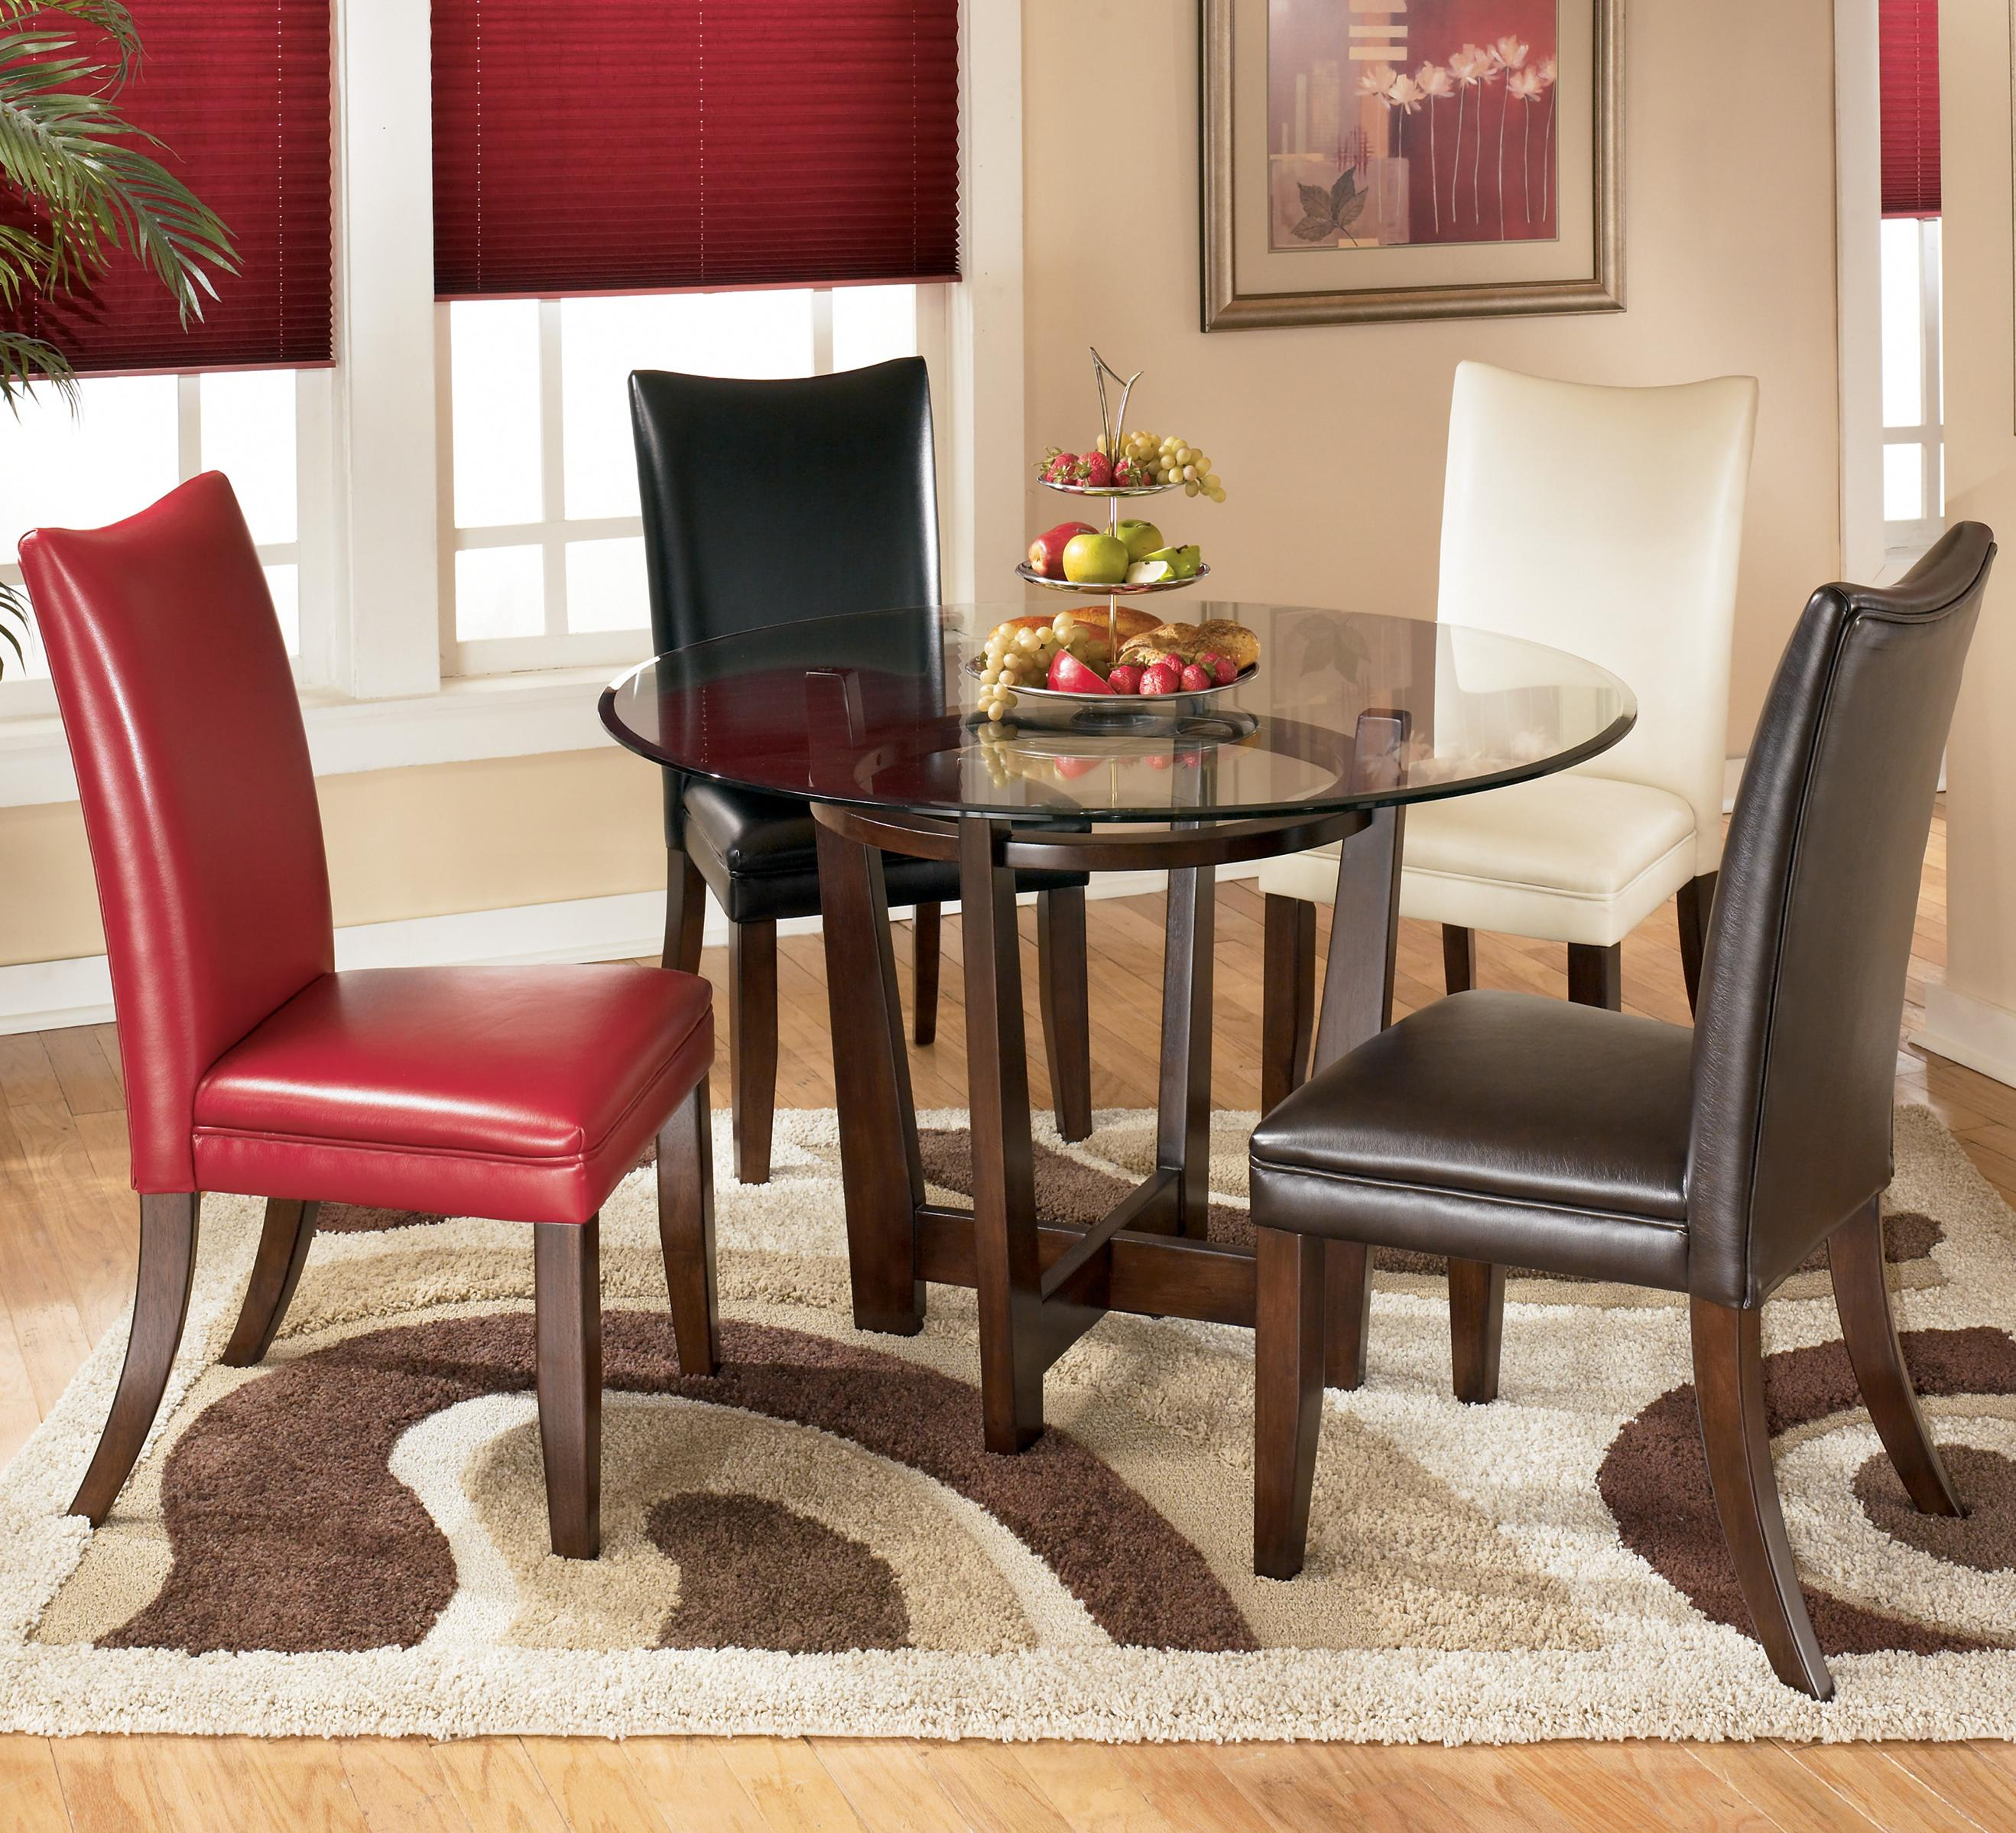 Ashley Signature Design Charrell D357-01 Brown Upholstered